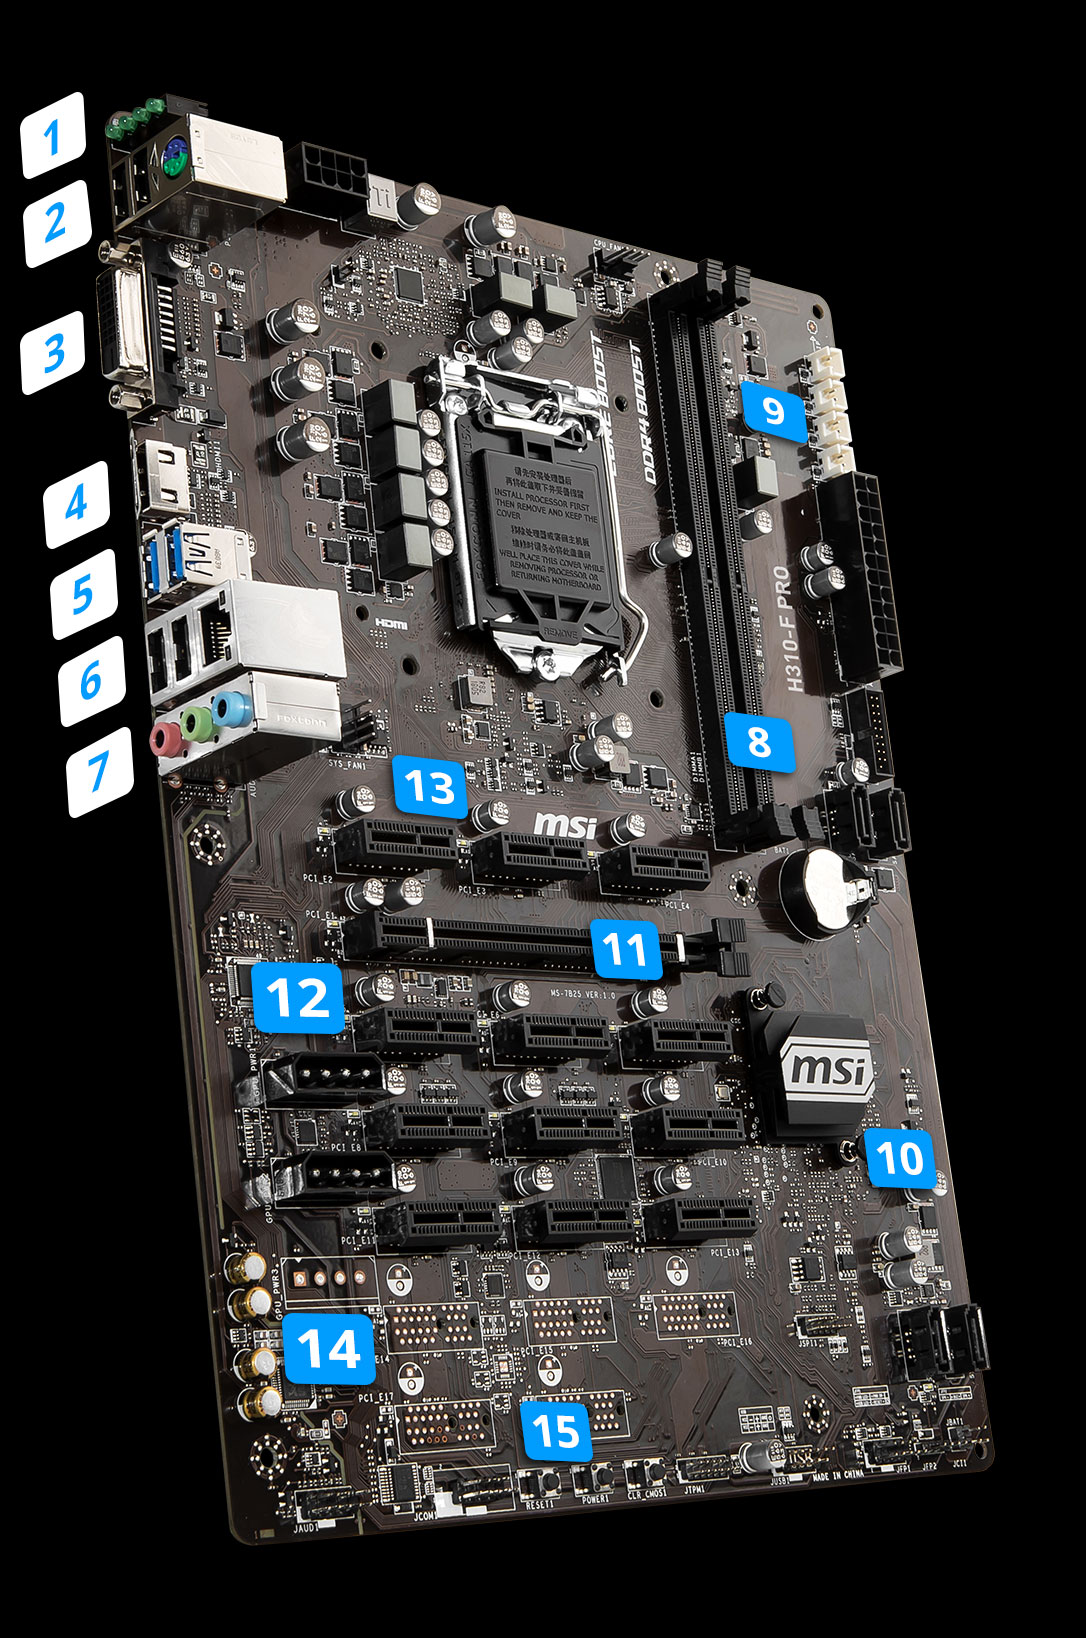 H310 F Pro Motherboard The World Leader In Design 12 Amazing Creations Made From Computer Chips And Circuit Boards Stronger Than Steel